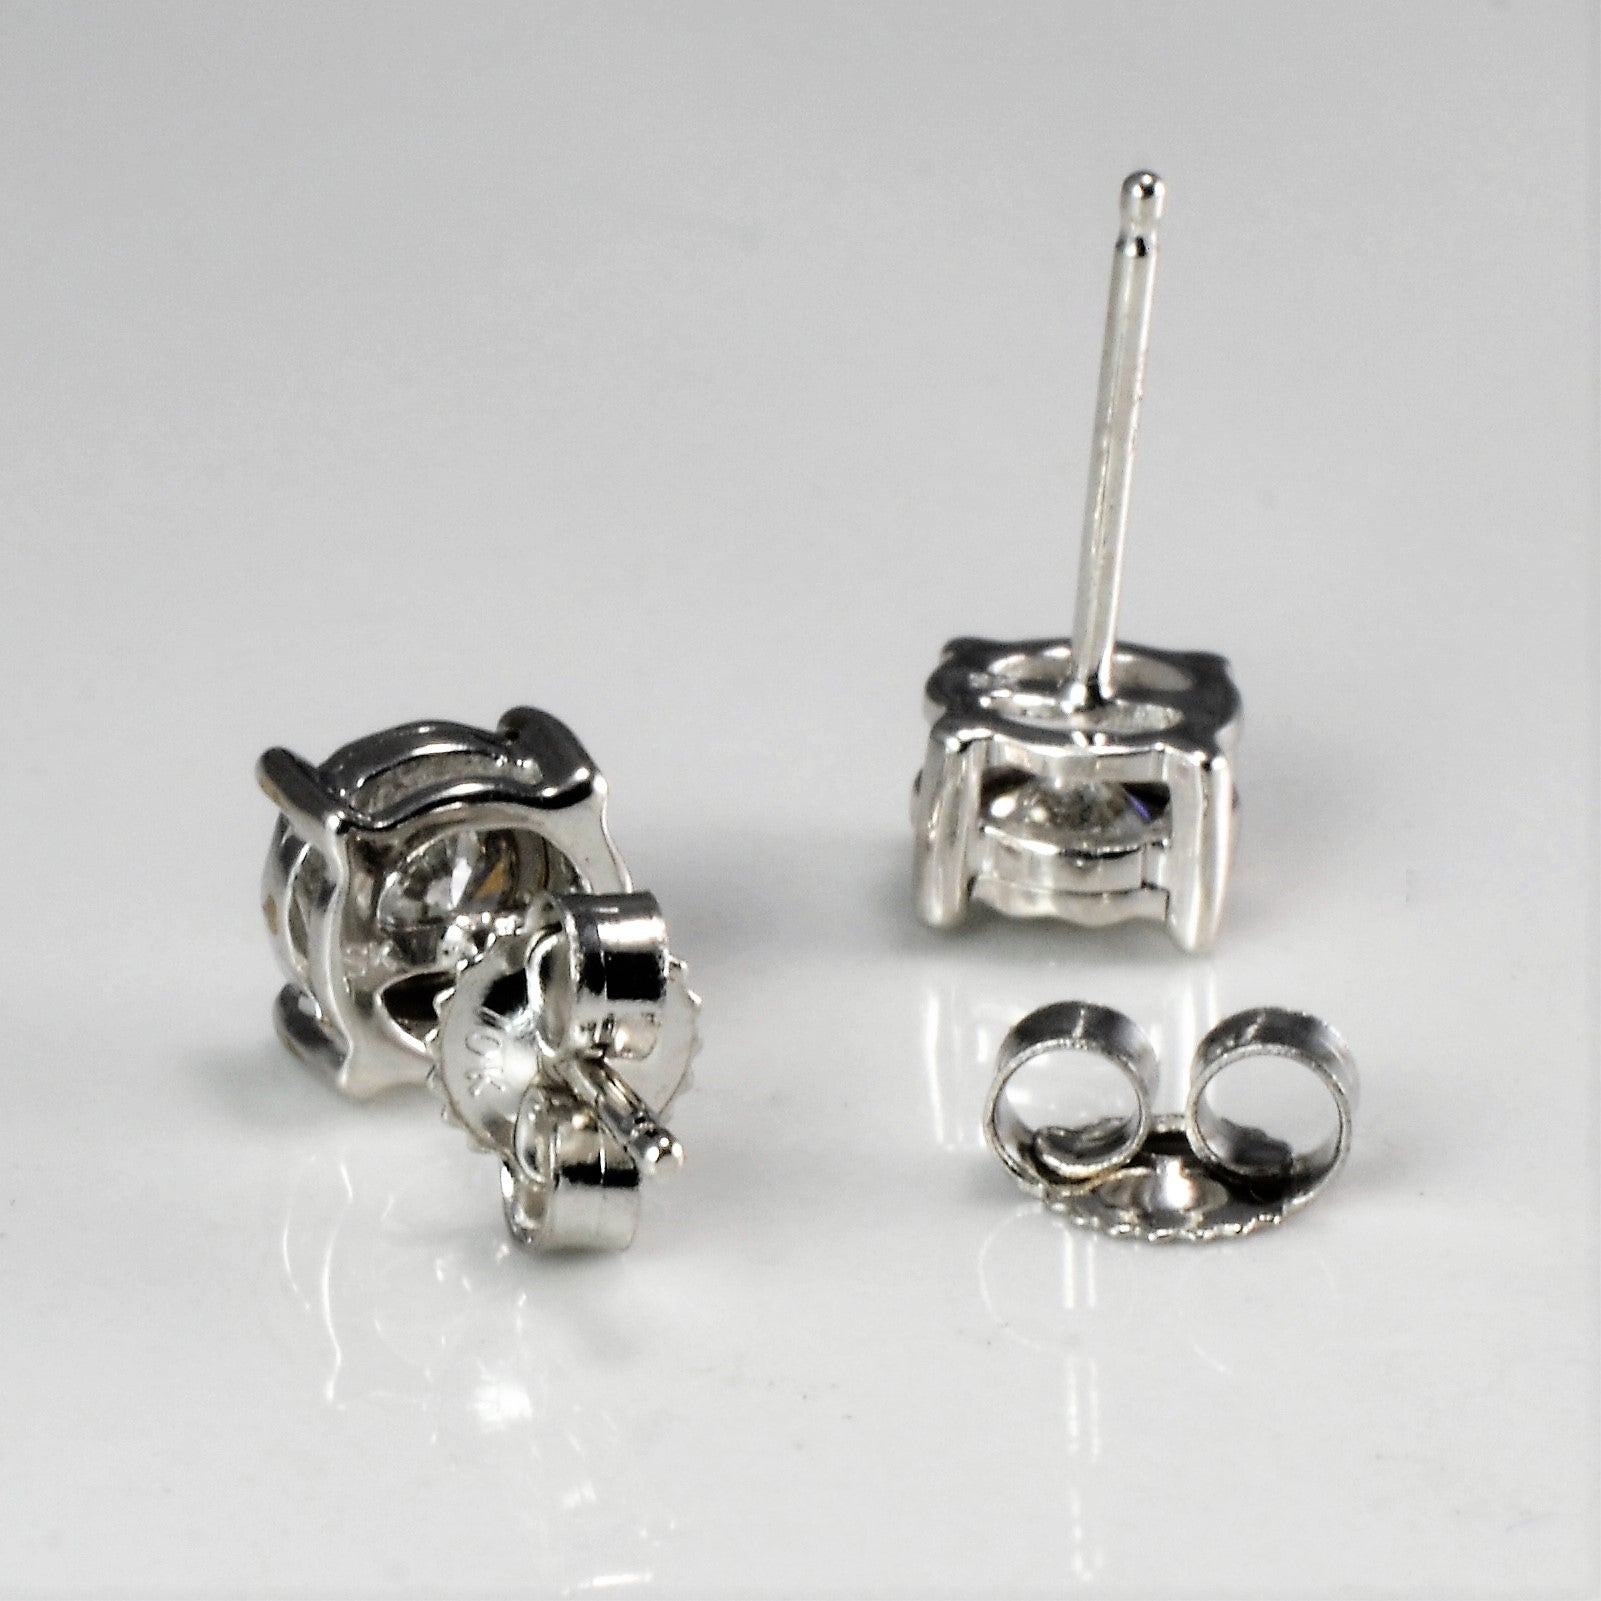 Illusion Set Diamond Stud Earrings | 0.30 ctw |